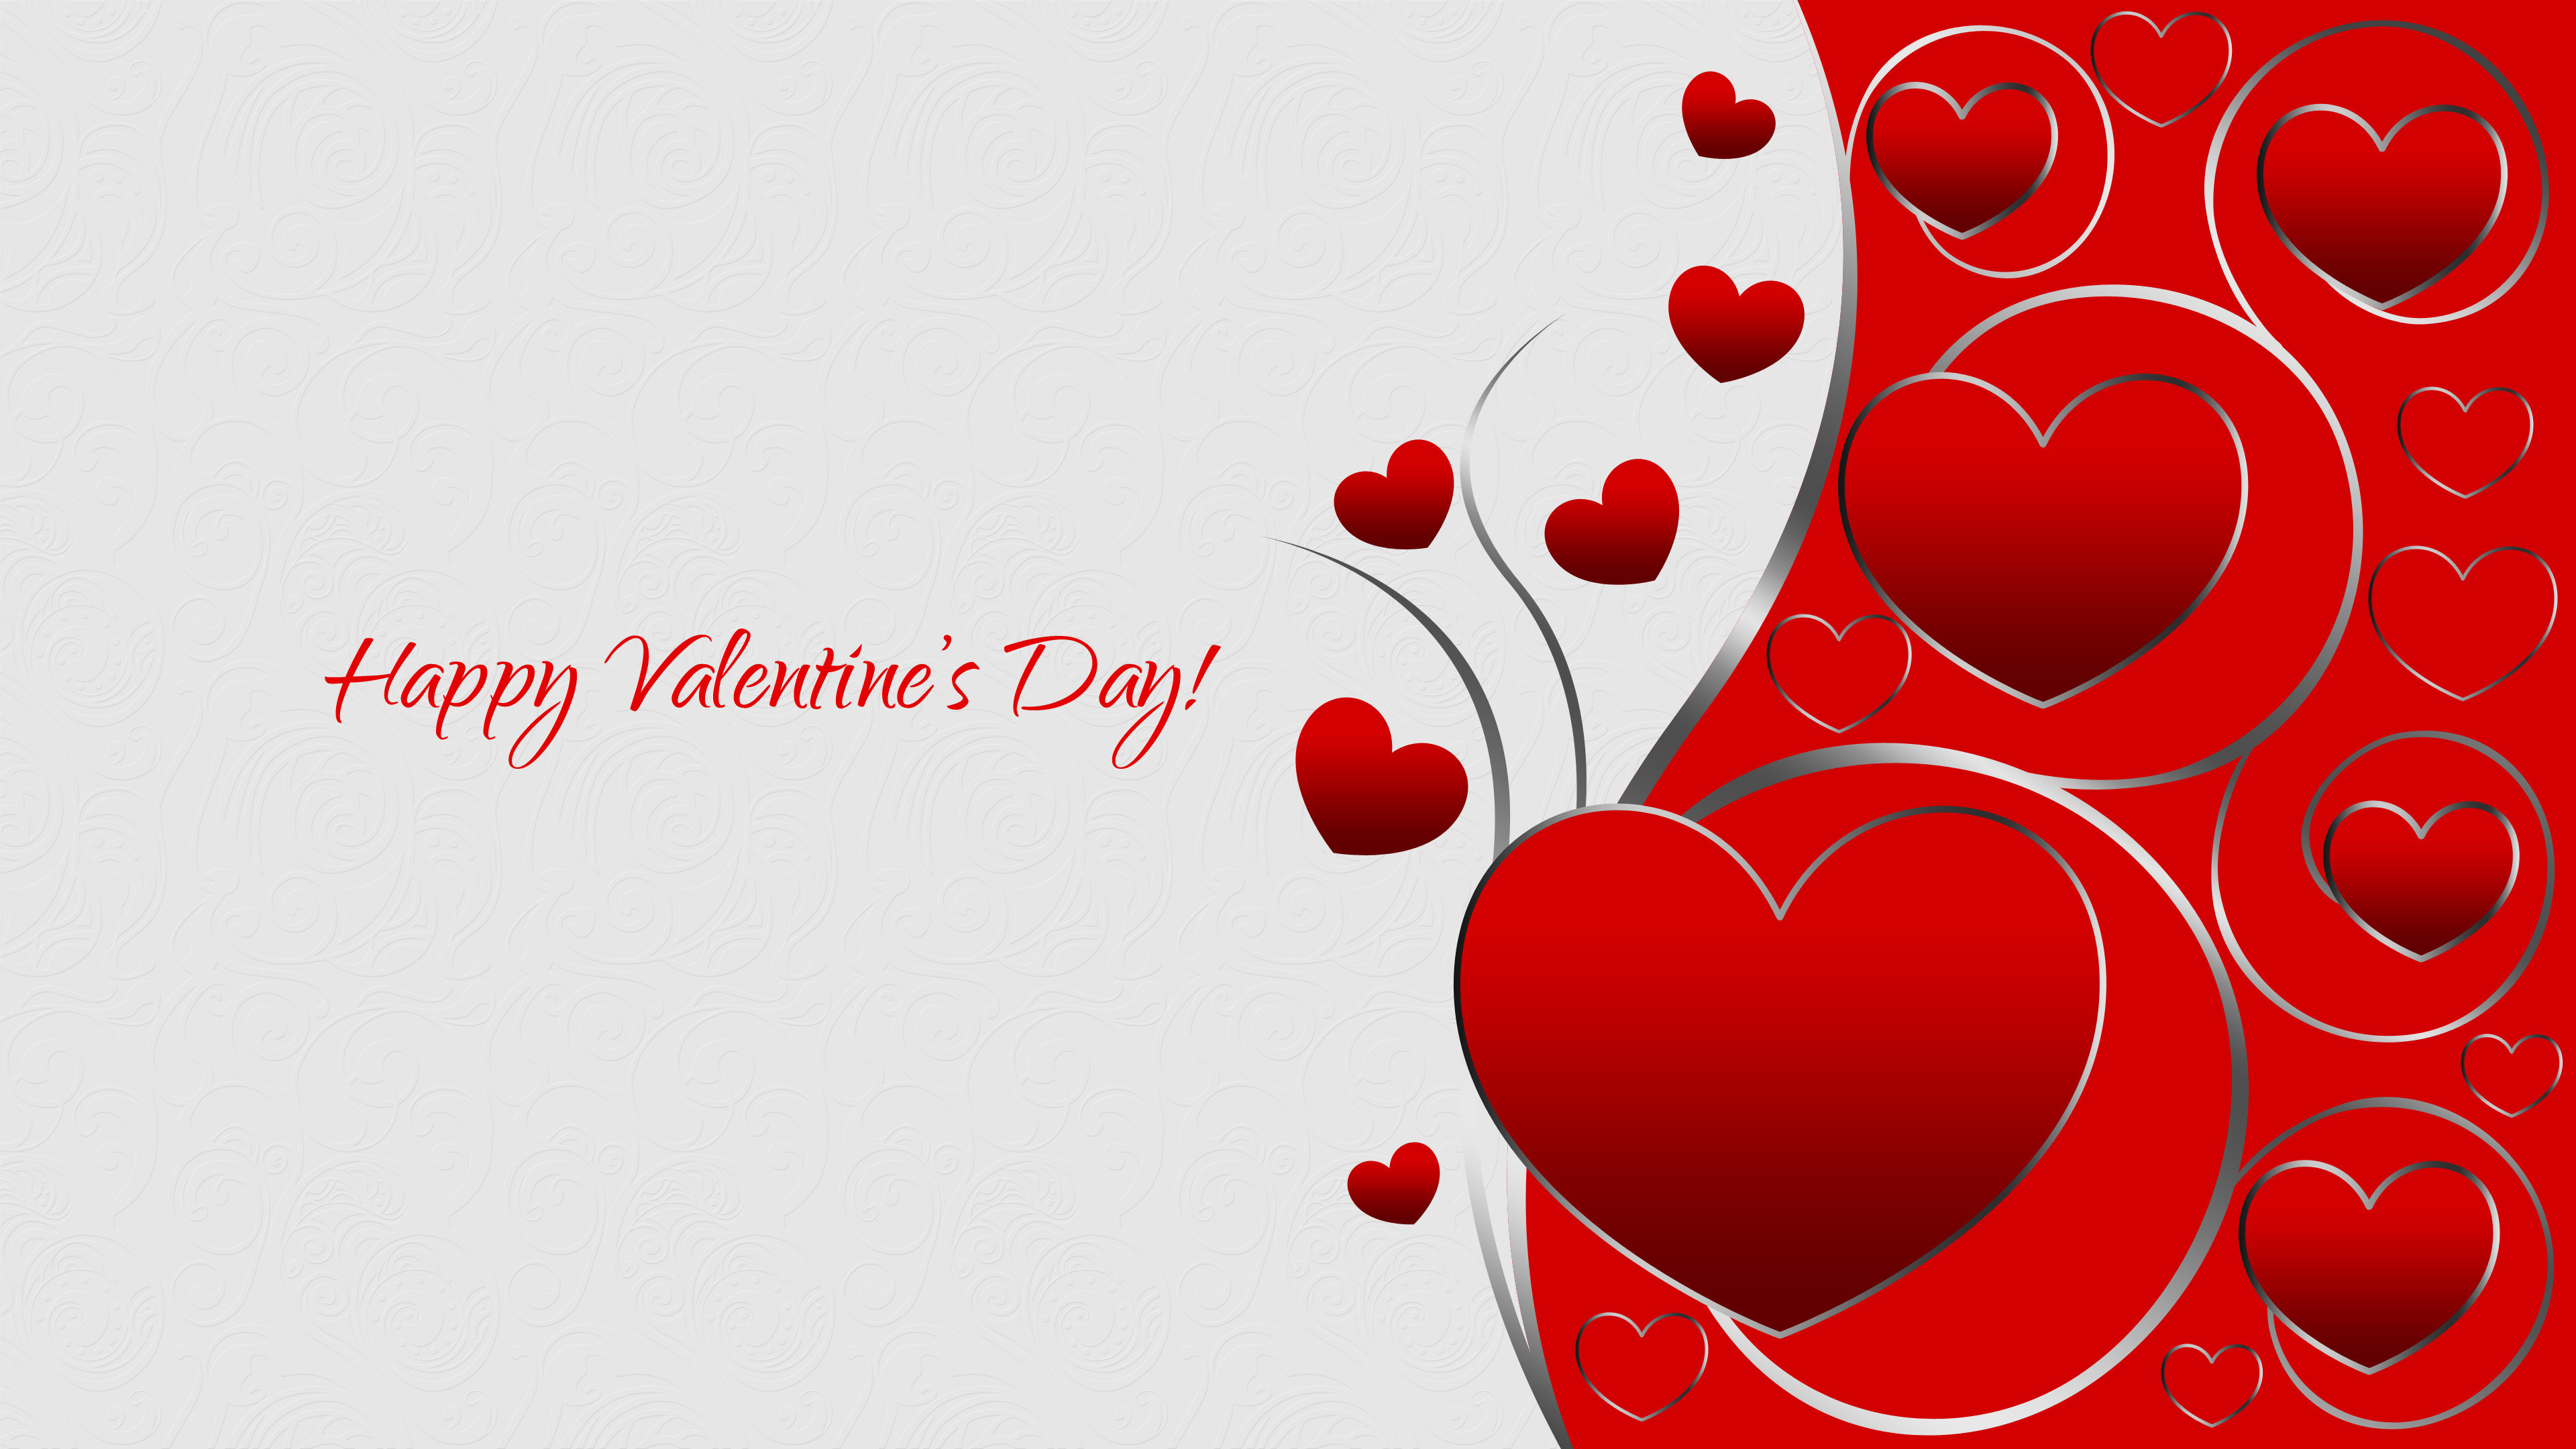 Valentine day background 46 images - Background for valentine pictures ...